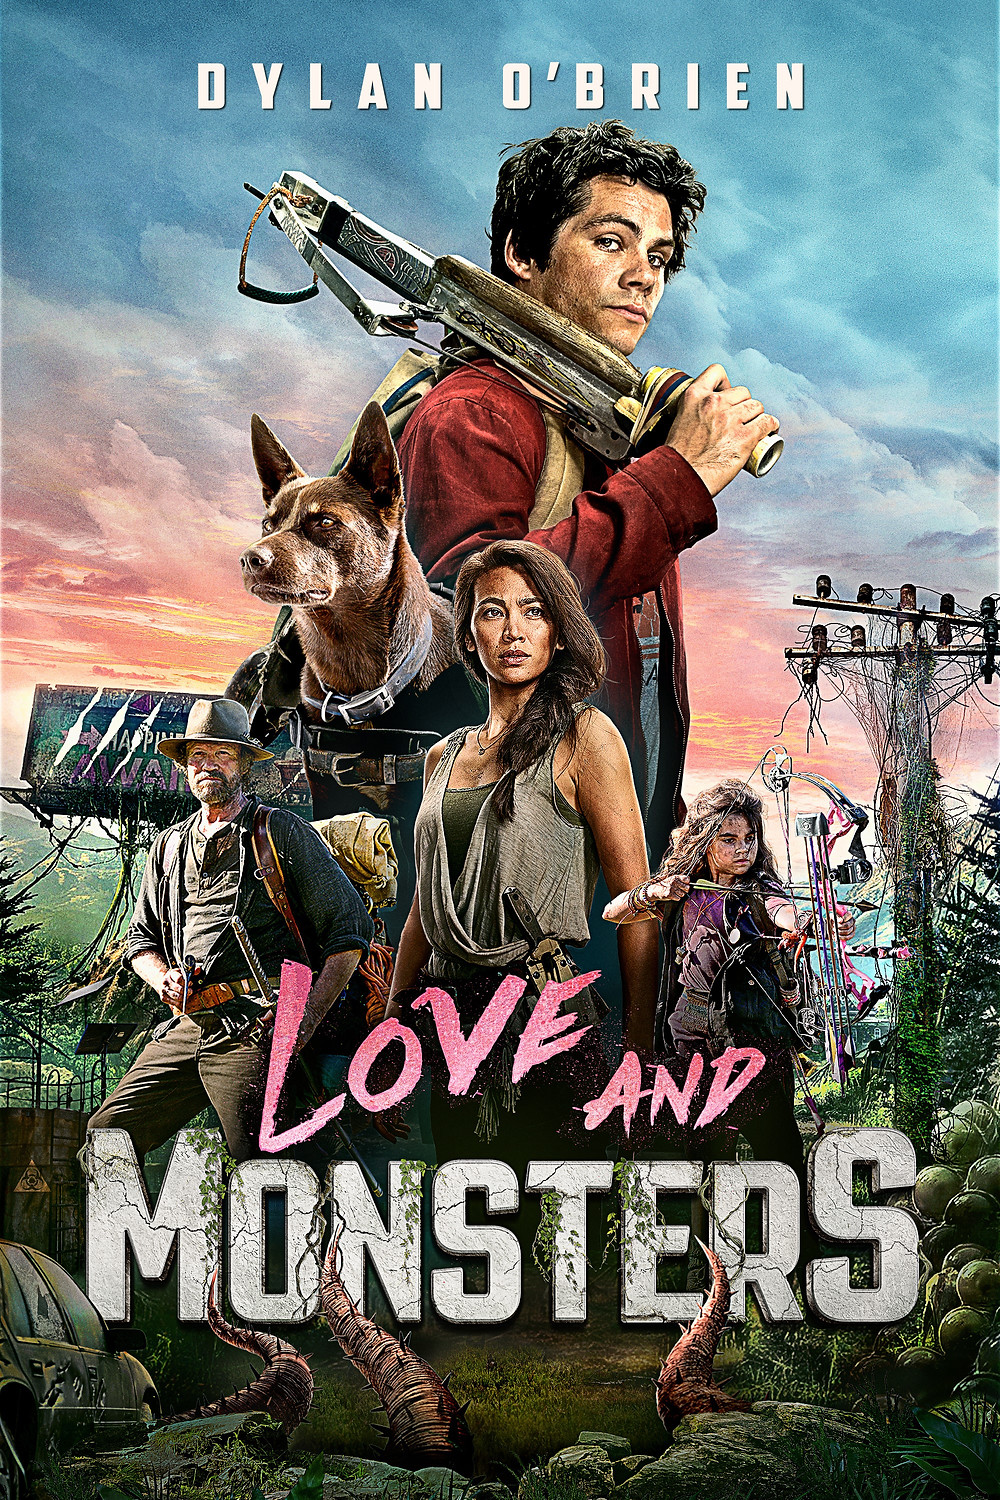 Promotional poster for the movie 'Love and Monsters'